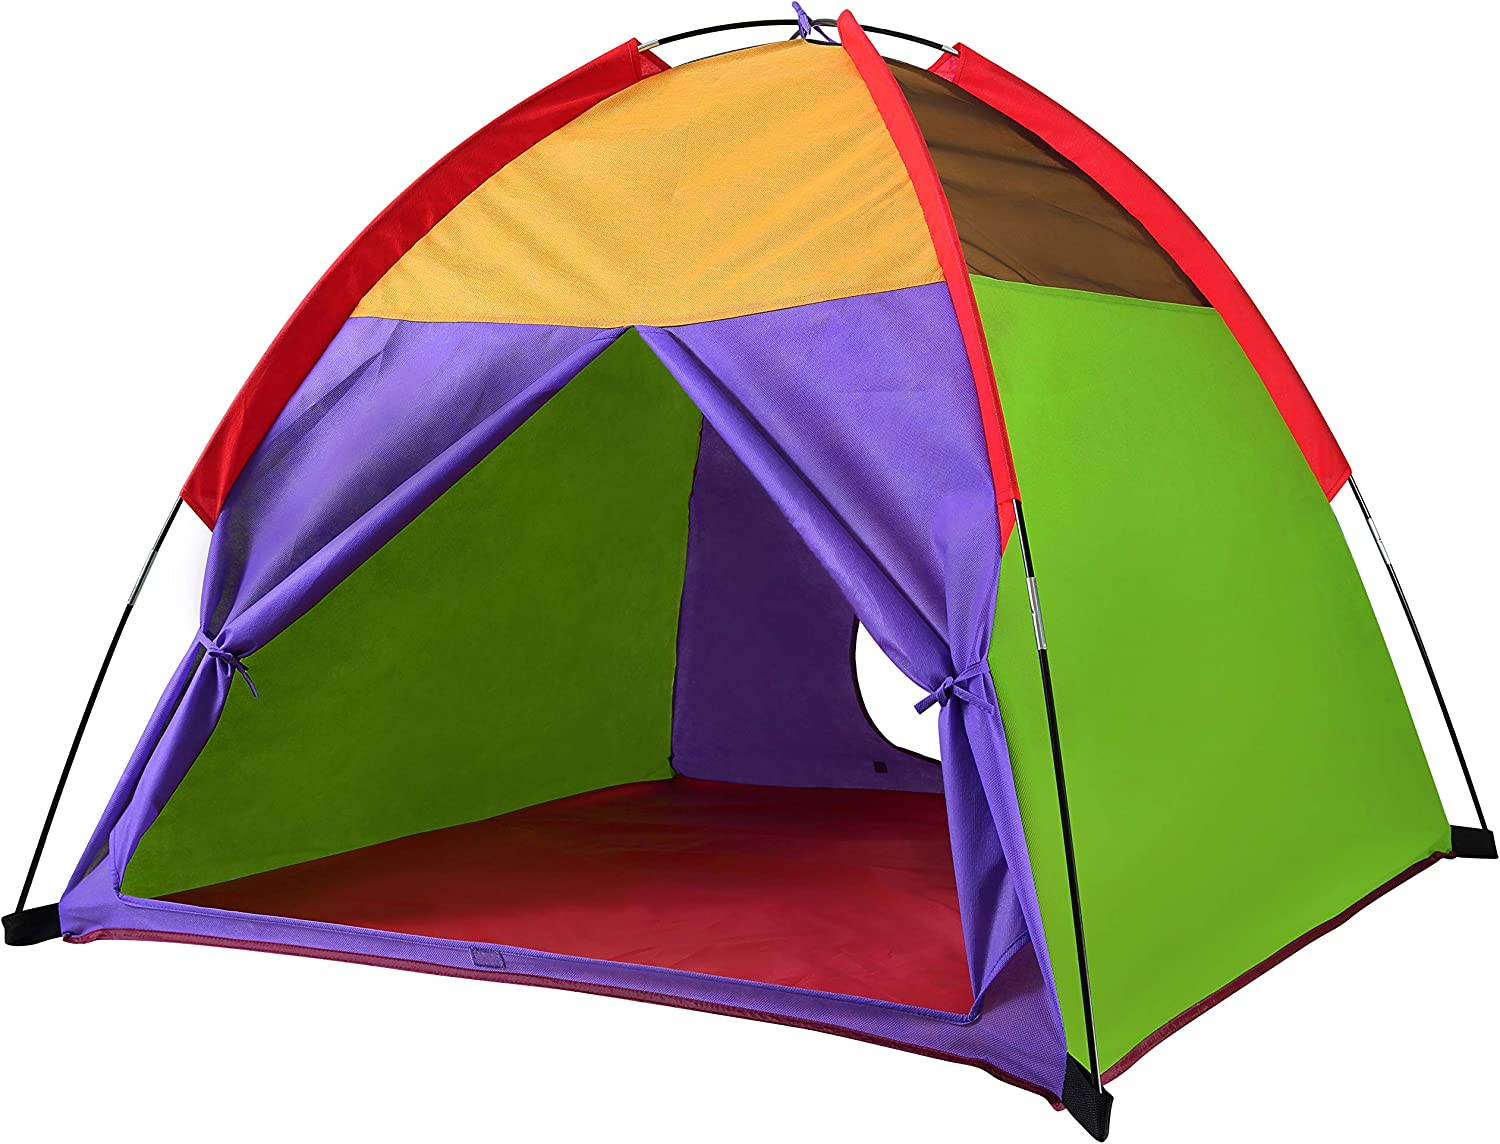 Alvantor Kids Tents Indoor Children Play Tent for Toddler Tent for Kids Pop Up Tent Boys Girls Toys Indoor Outdoor Playhouse Camping Playground